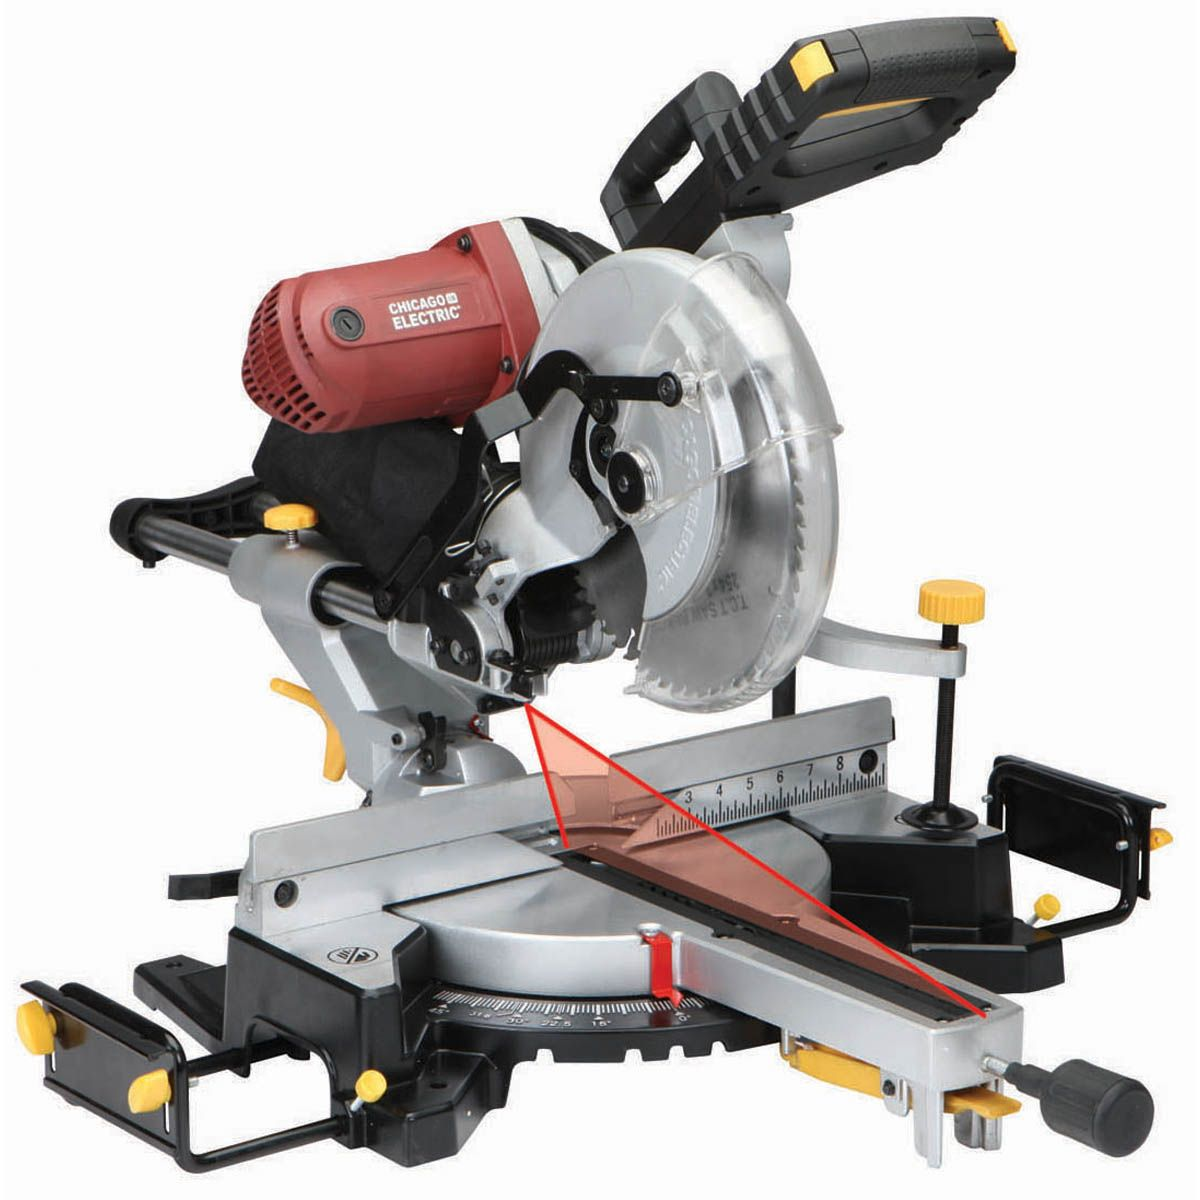 12 In Dual Bevel Sliding Compound Miter Saw With Laser Guide System Herramientas